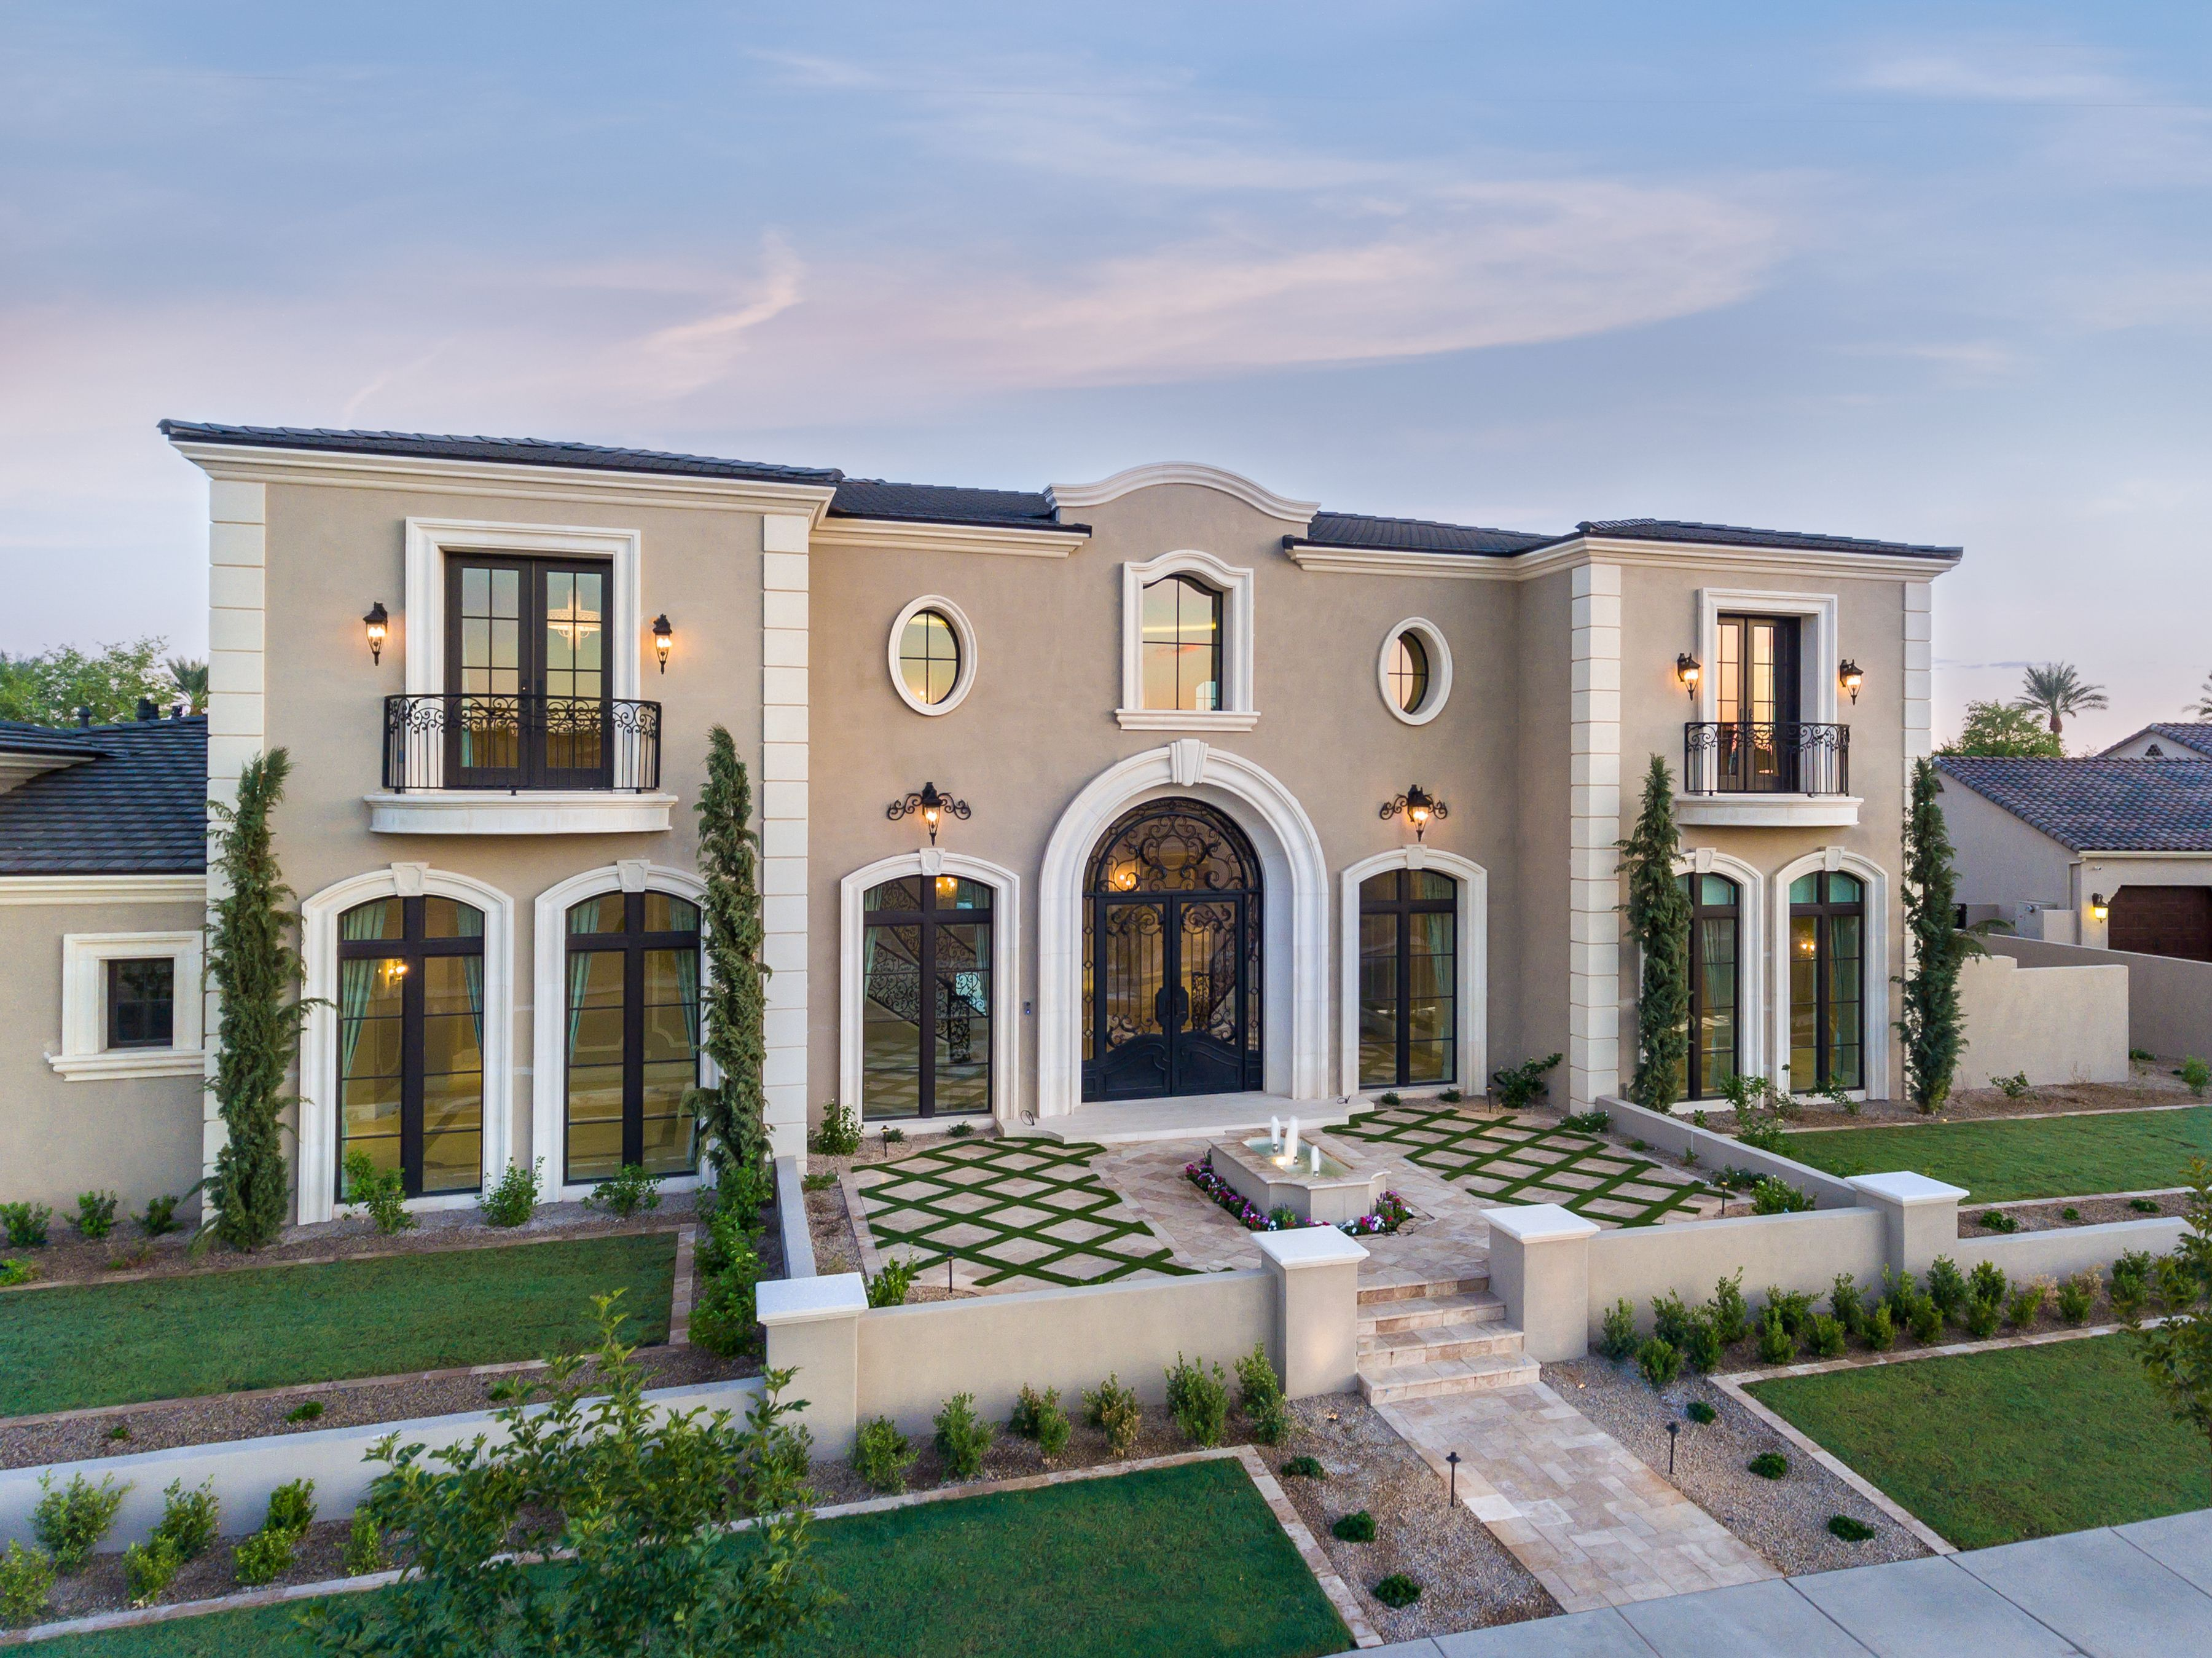 World Renowned Luxury Home Builder Fratantoni Luxury Estates Built This Beautiful Home Mediterranean Style Homes Modern Mediterranean Homes Mediterranean Homes